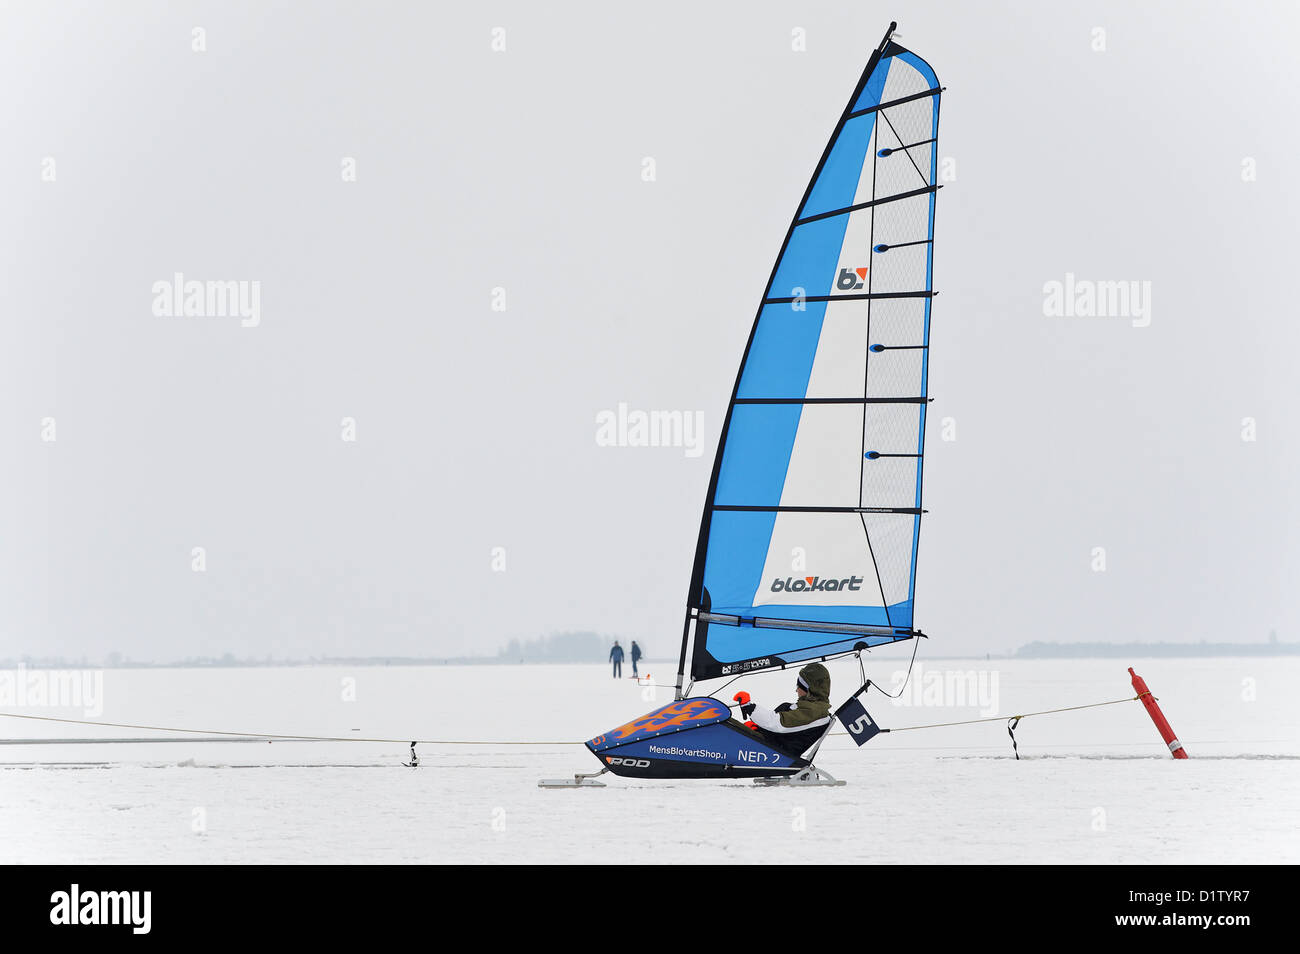 Wind Surfing on ice on a frozen lake in the Netherlands - Stock Image